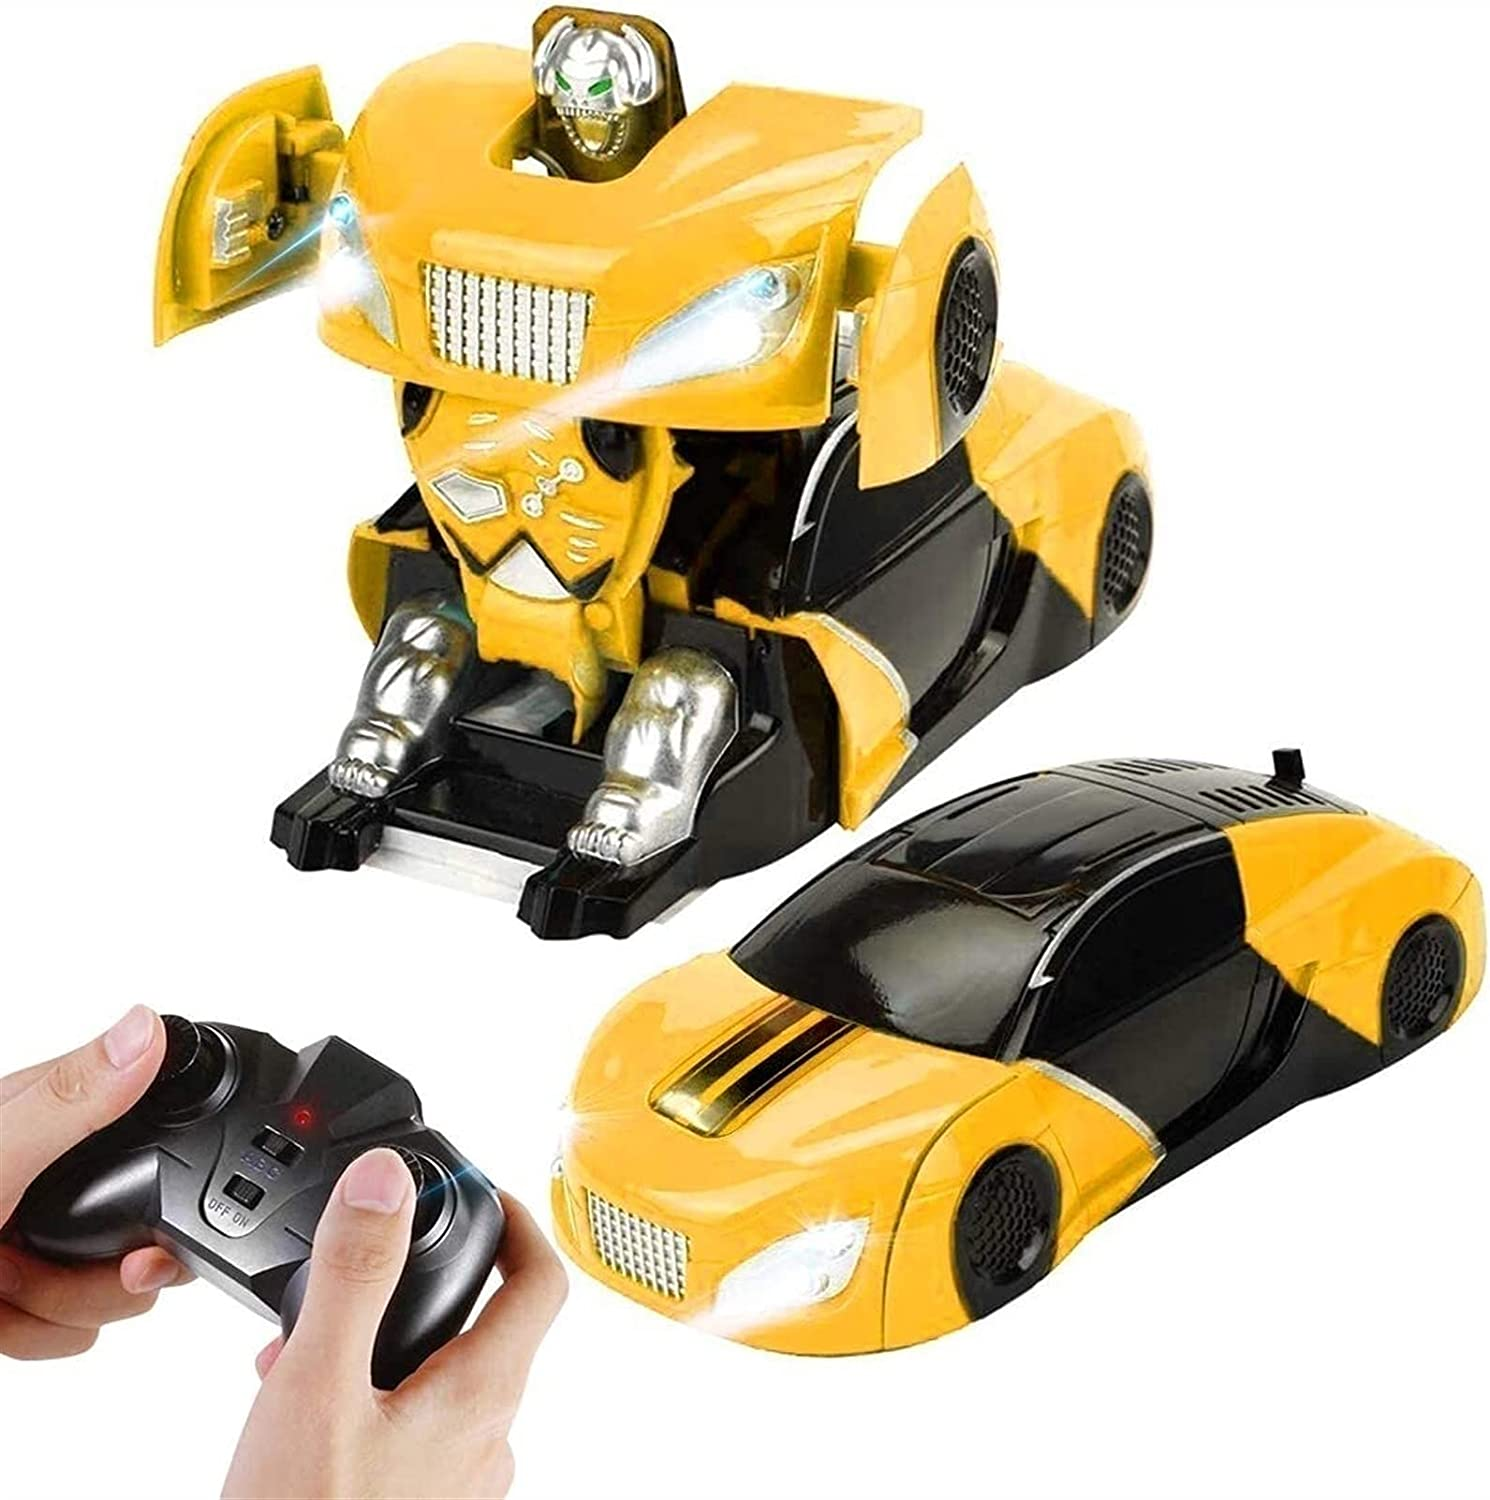 Sterling Max 57% OFF Ranking TOP17 Endurance Transformers Toys Control Remote Transformer